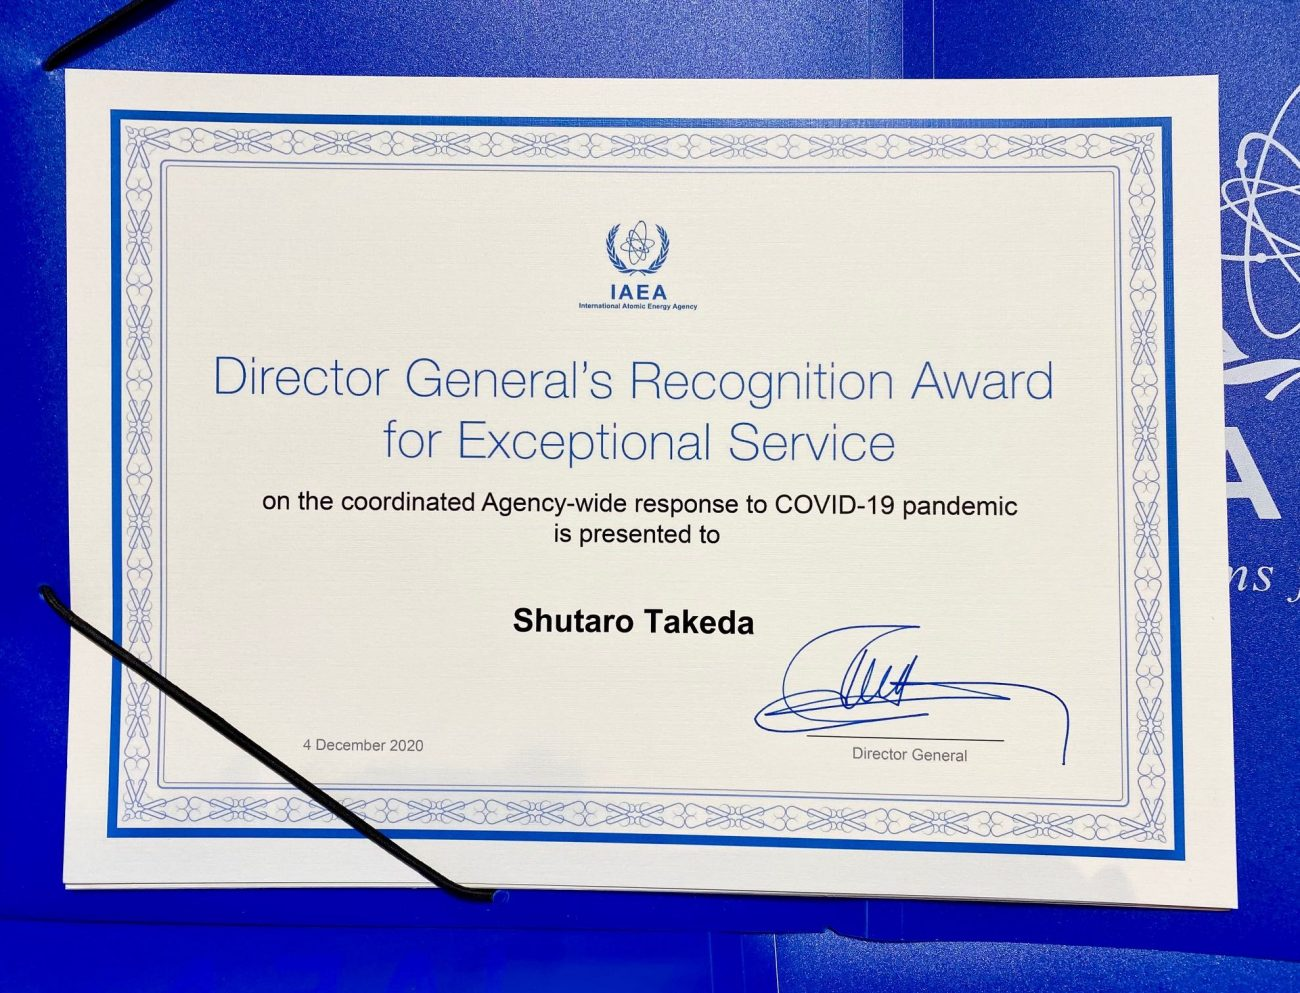 (Award) IAEA Director General's Recognition Award for Exceptional Service